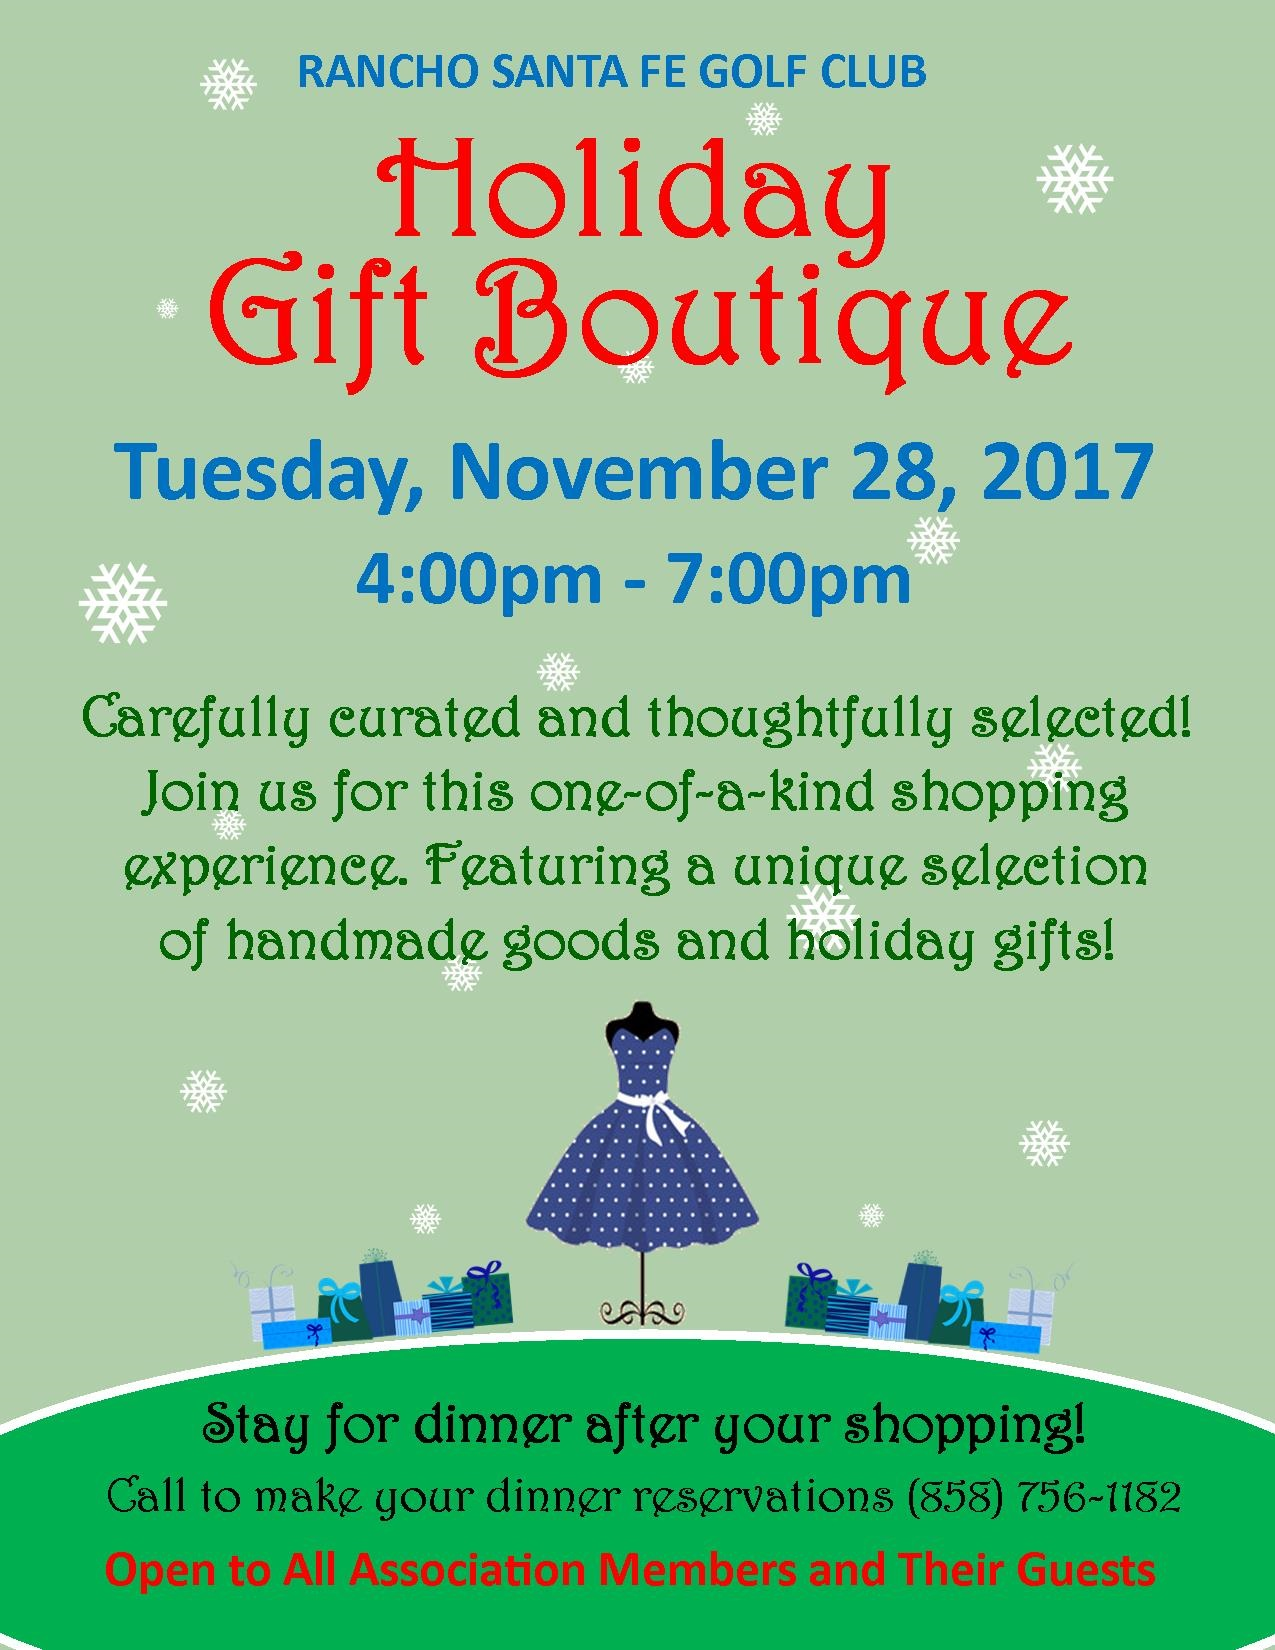 HolidayGiftBoutique11.28.17.jpg